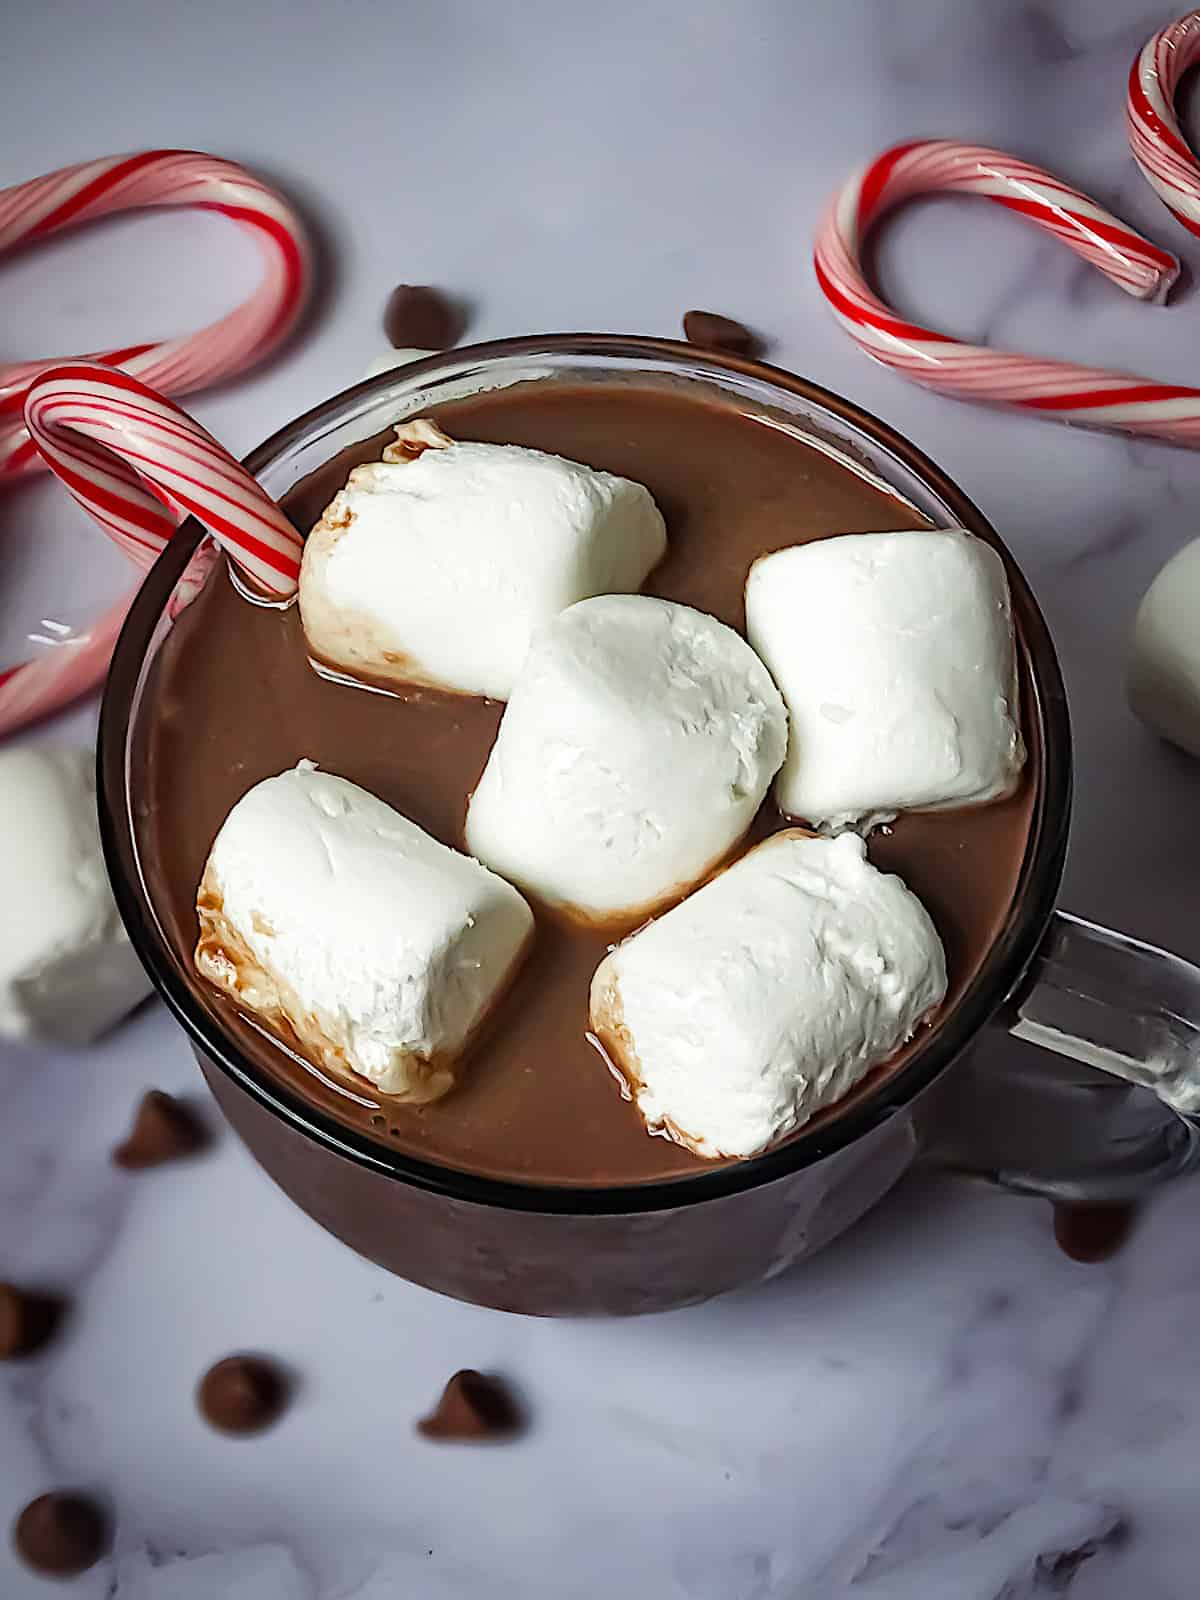 crockpot hot cocoa in a mug with candy canes and marshmallows